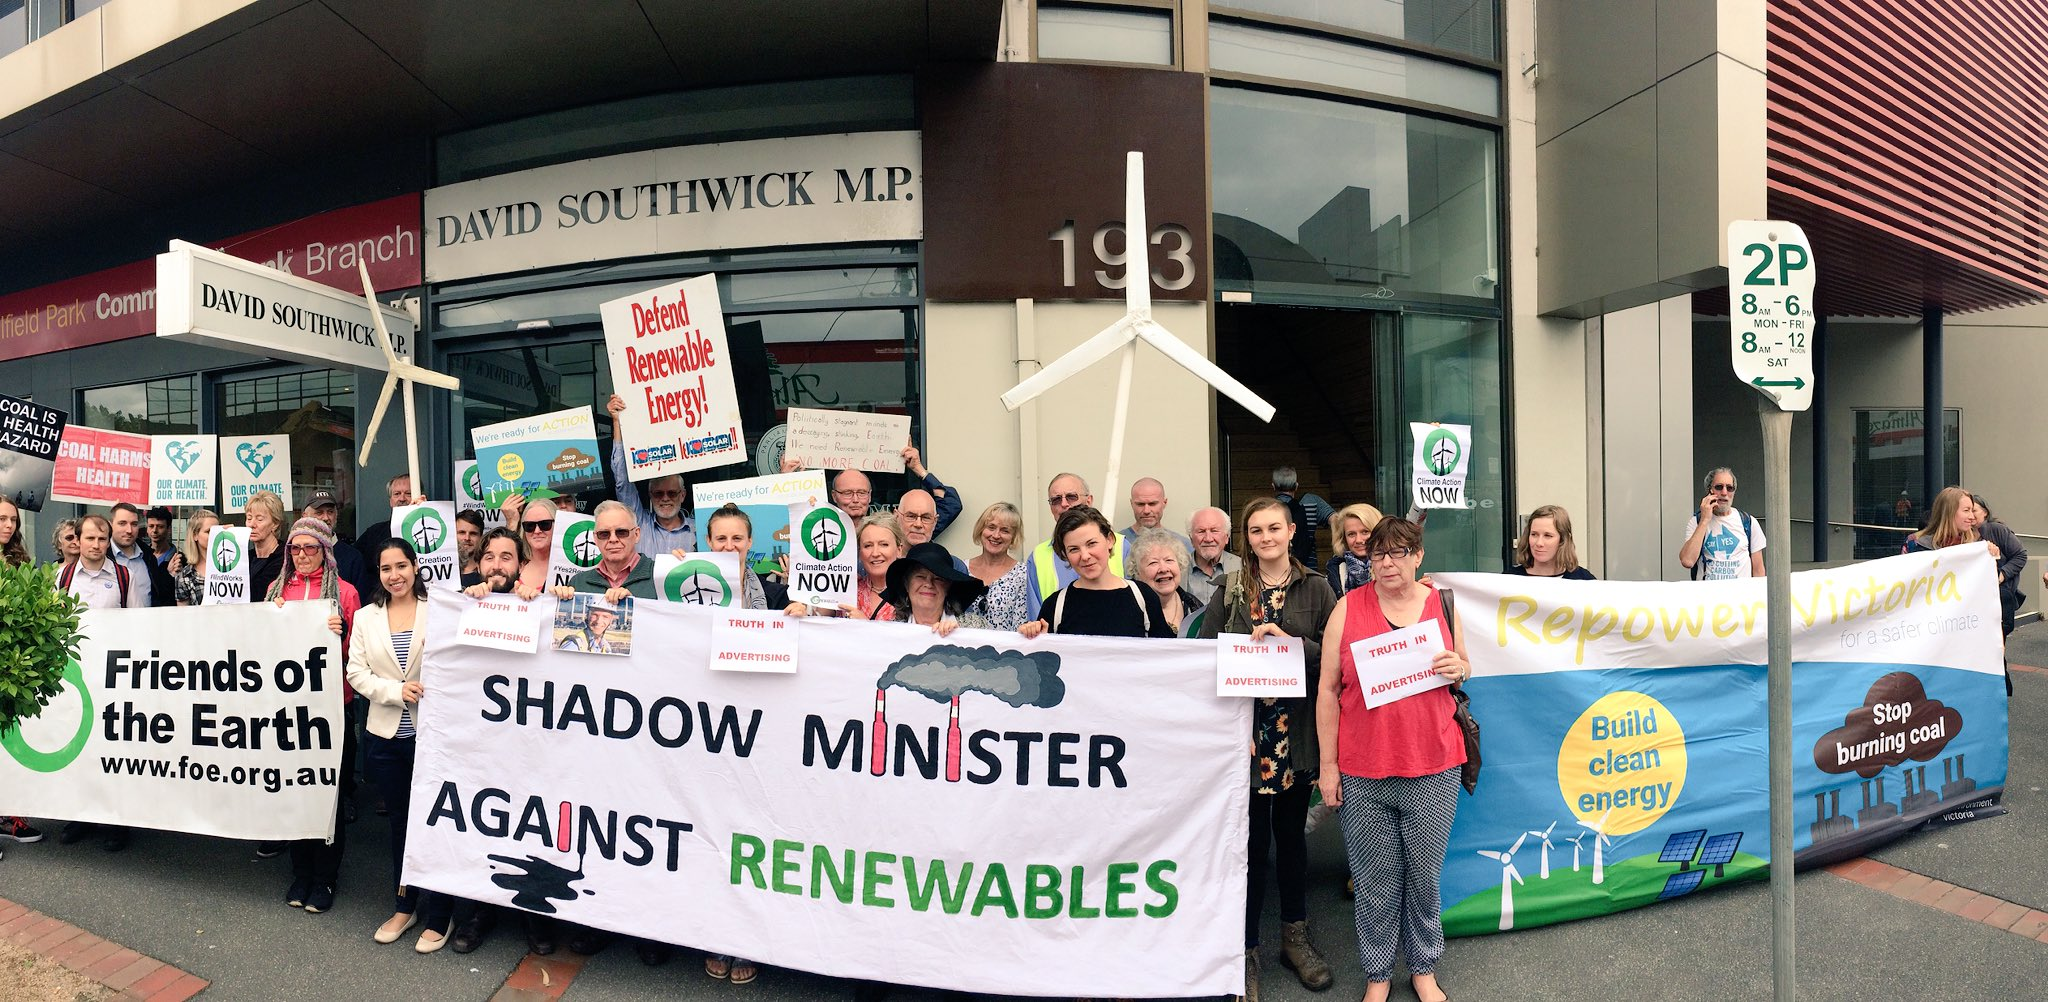 Shadow Minister David Southwick is in hiding after pledging to scrap the popular #VRET. Community members want him retitled... #SpringSt https://t.co/LpKm72JvXG